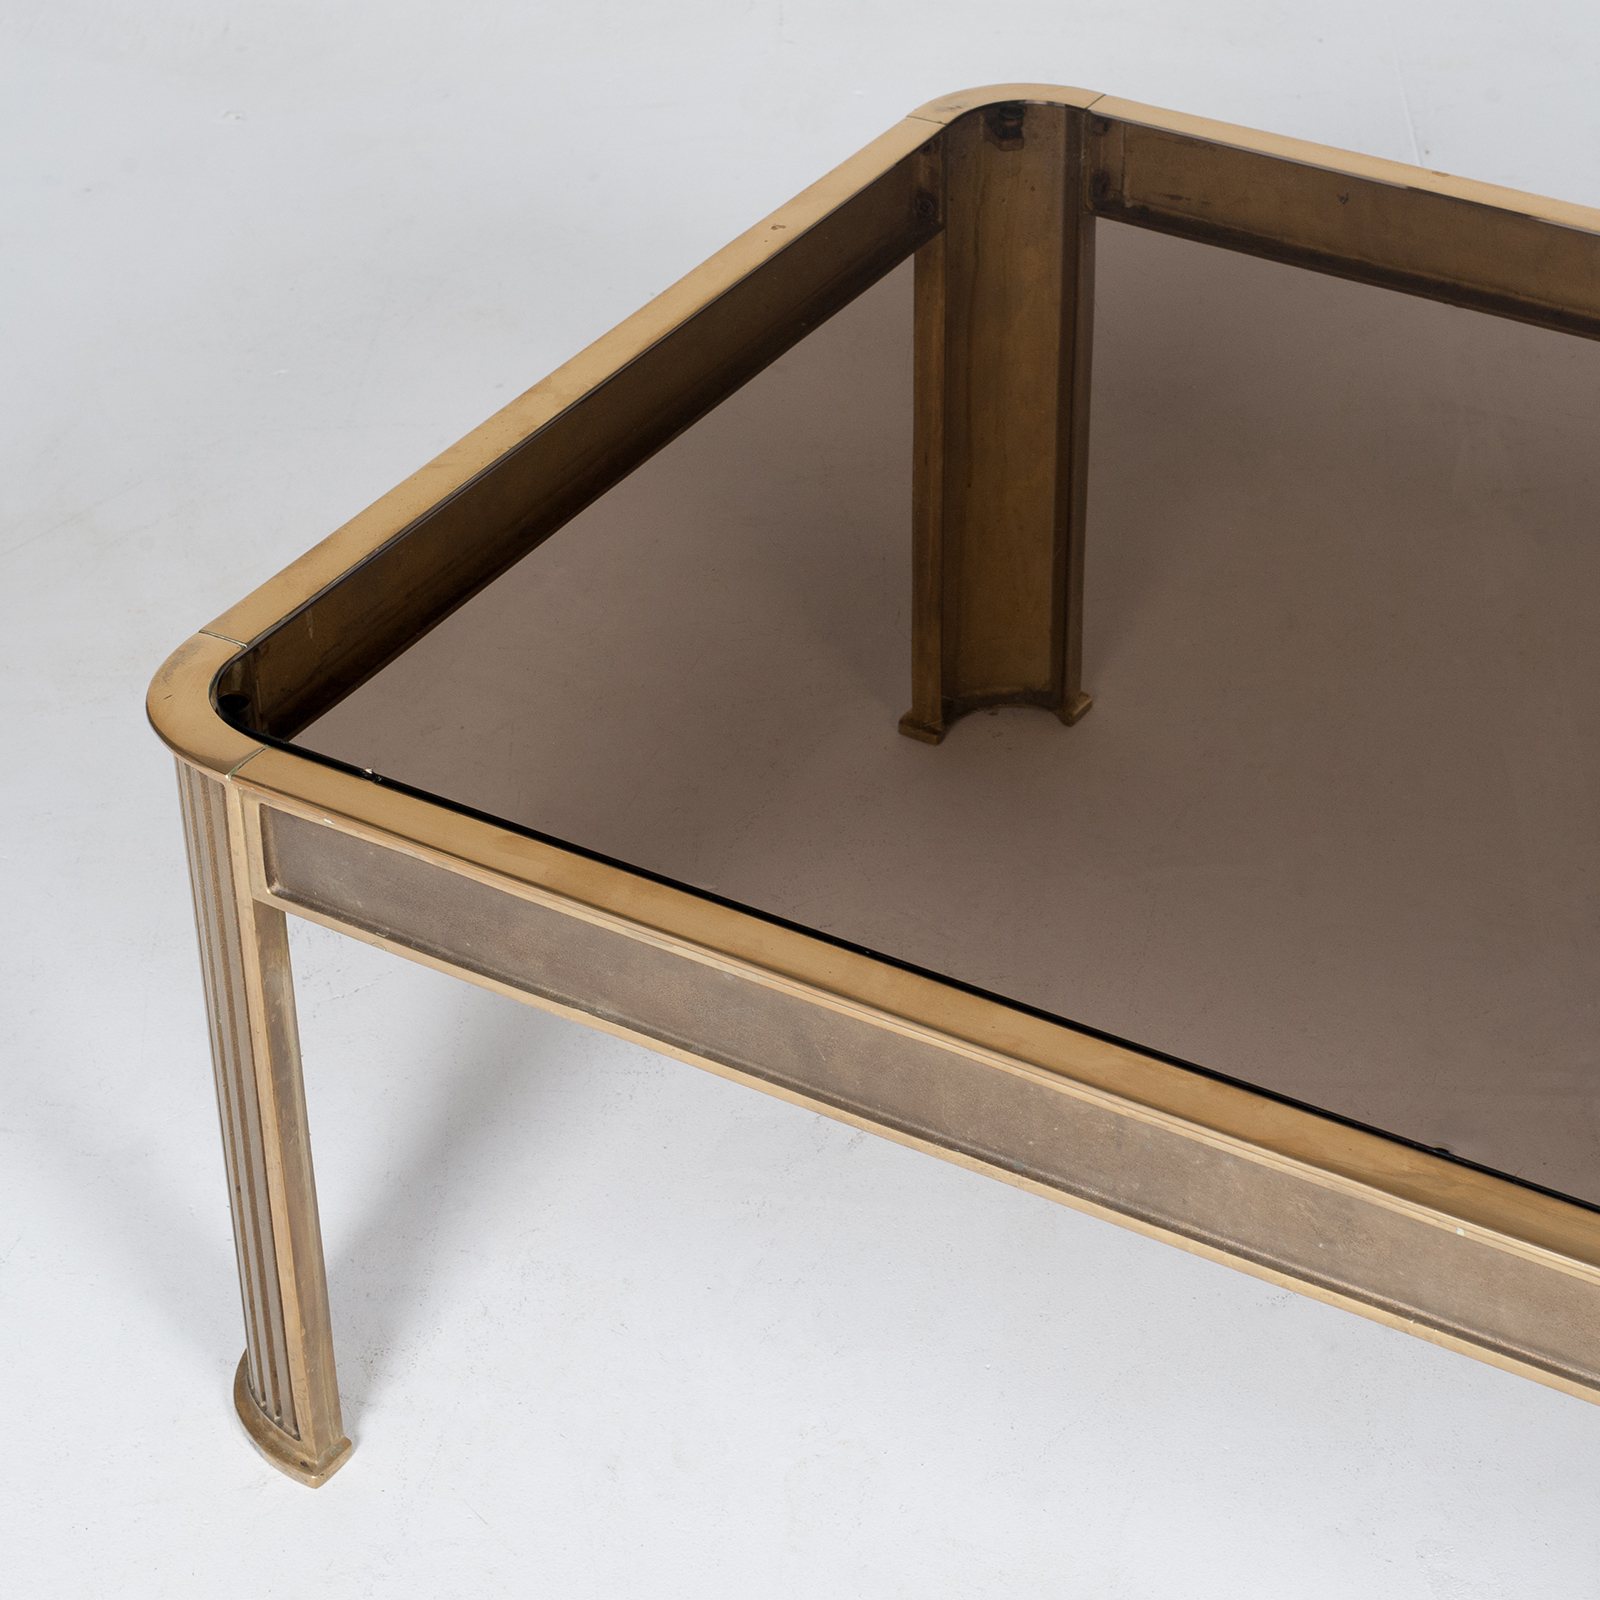 Rectangular Coffee Table With Solid Brass Frame By Peter Ghyczy, 1970s, The Netherlands 7